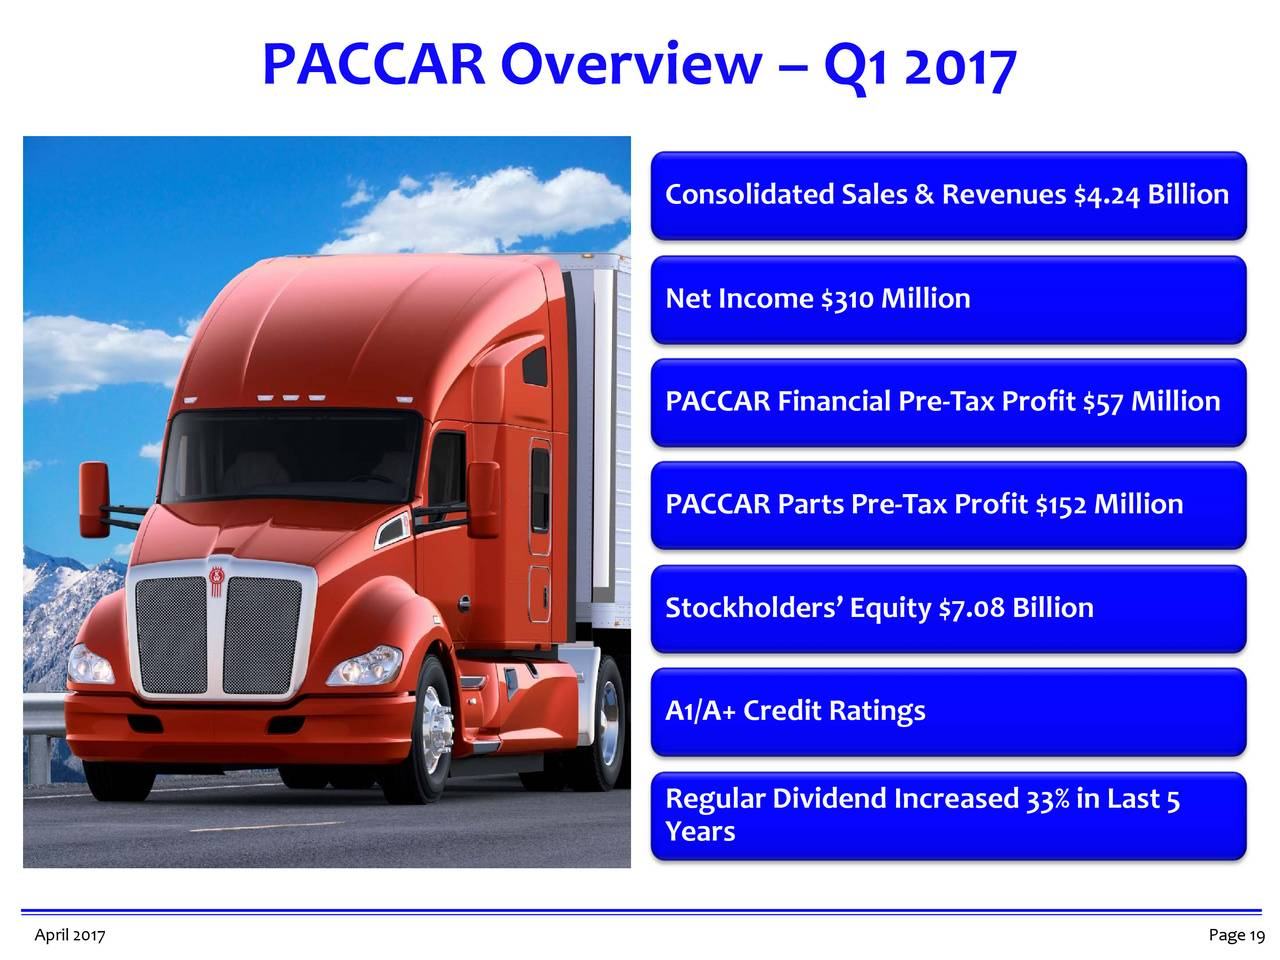 strategic audit of paccar inc Internal audits serve various purposes some audits assess compliance with laws and regulations others measure compliance with the organization's internal policies and procedures a strategic audit helps small-business owners assess whether internal processes move the needle toward their strategic.